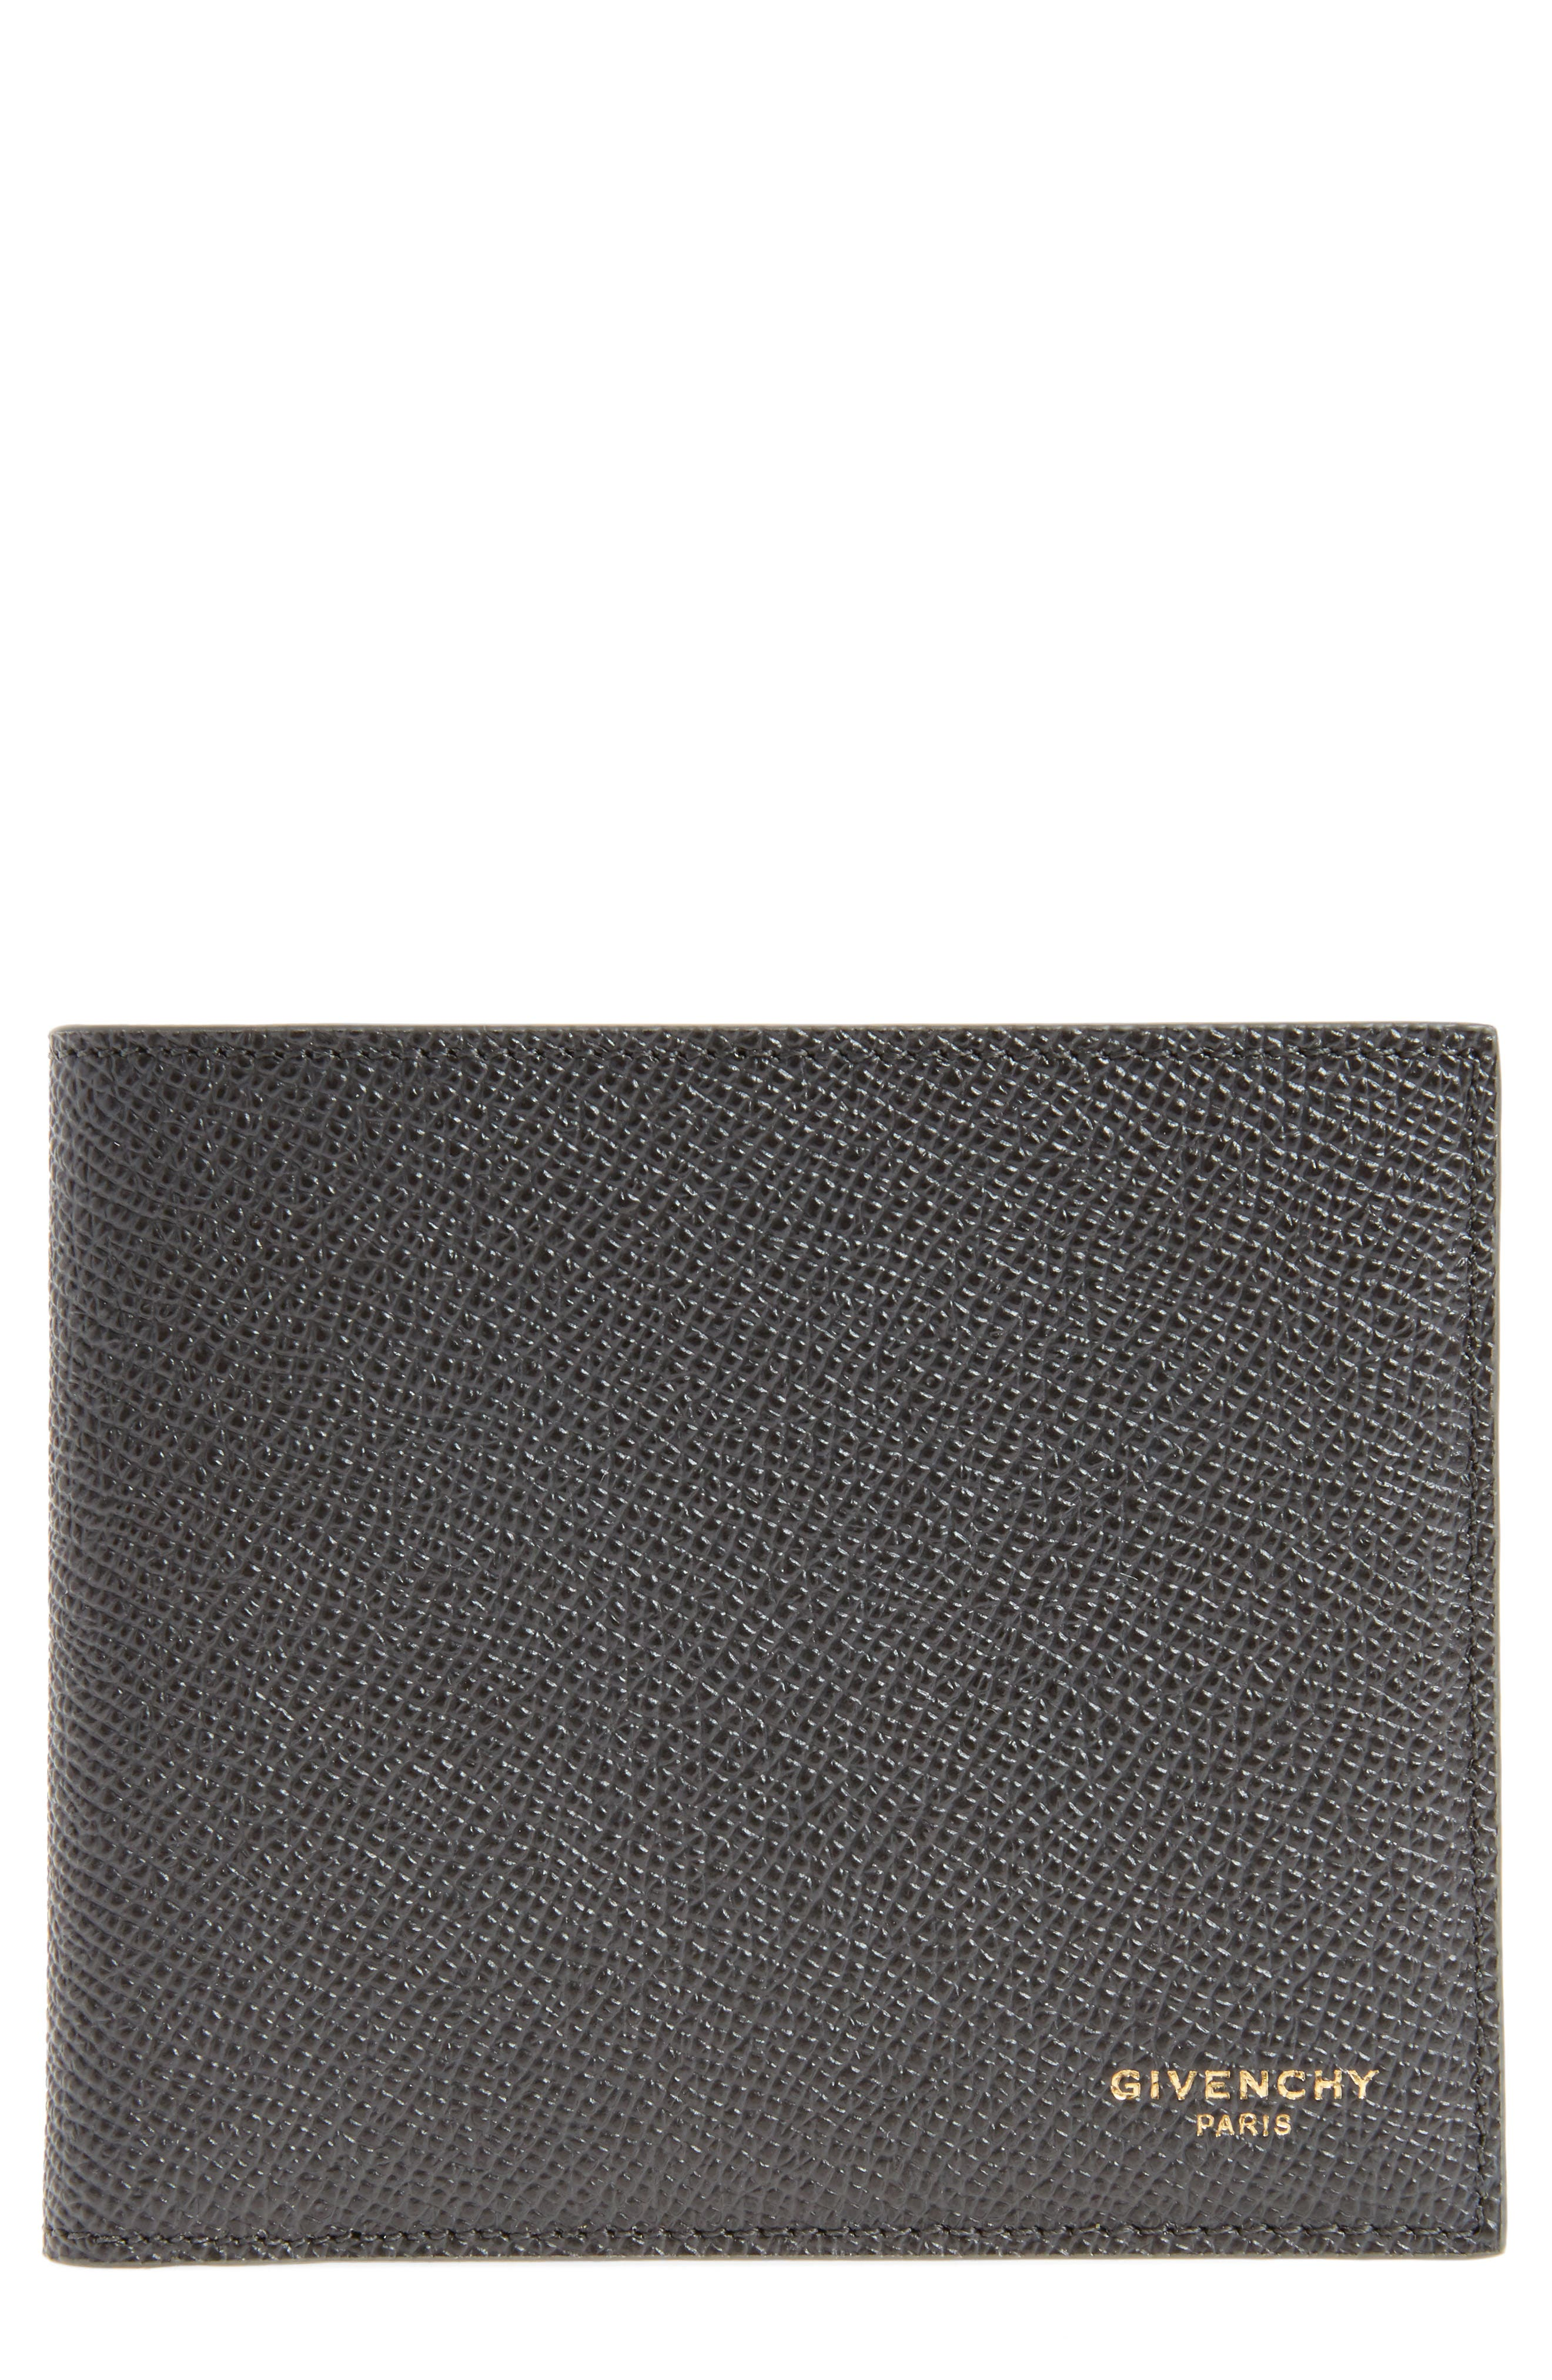 Alternate Image 1 Selected - Givenchy Calfskin Leather Bifold Wallet